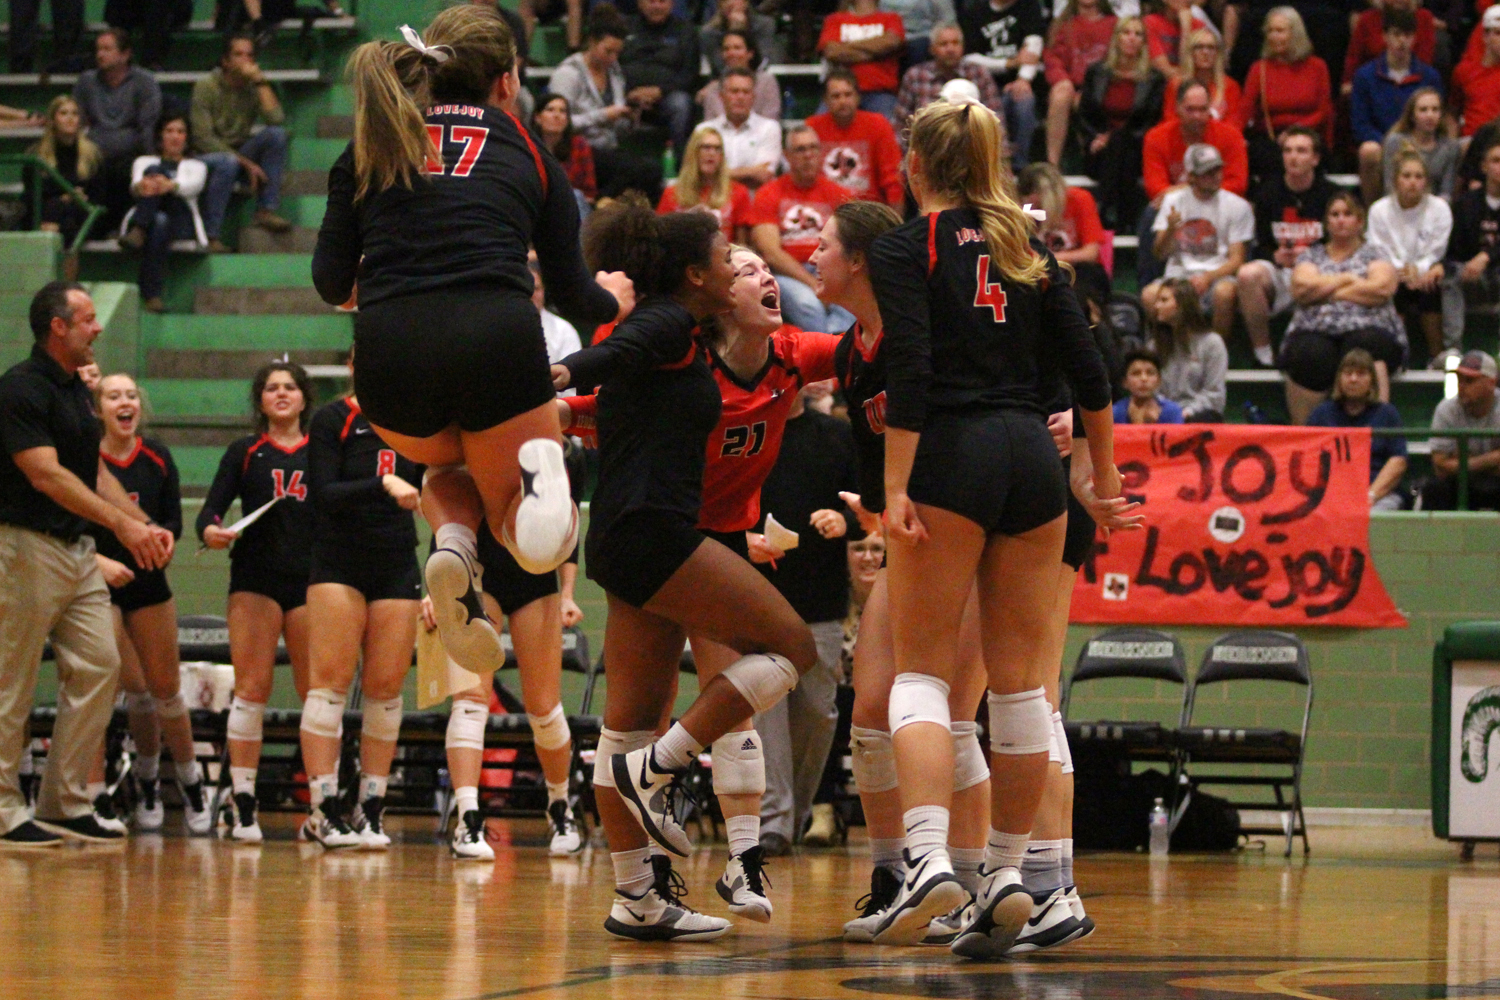 Leopards+celebrate+after+winning+their+second+set+of+the+game.